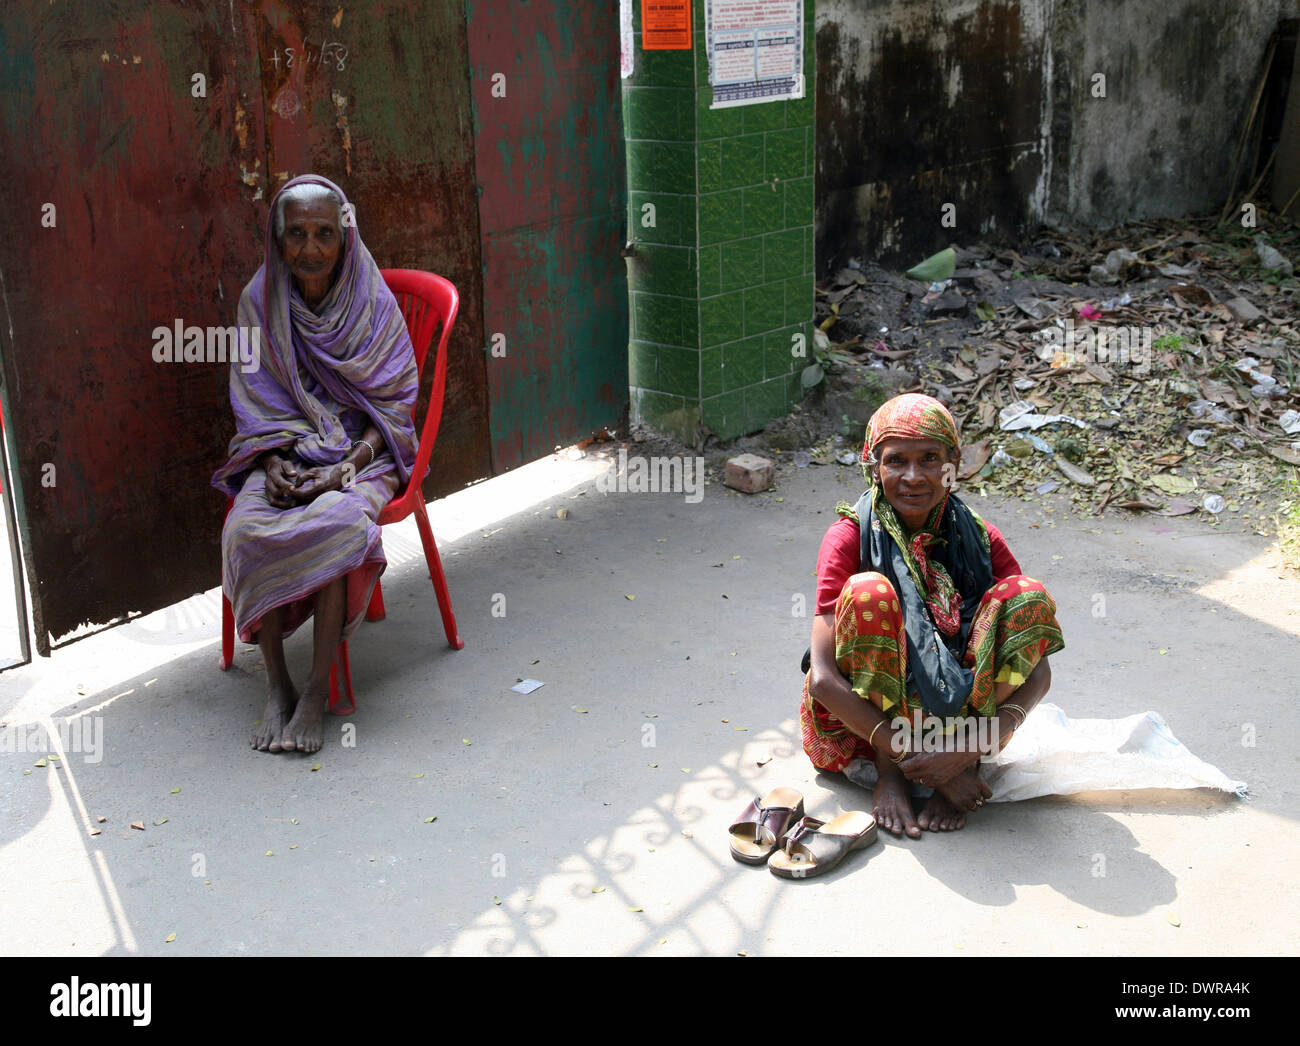 Streets of Kolkata. People live and work on the streets - Stock Image